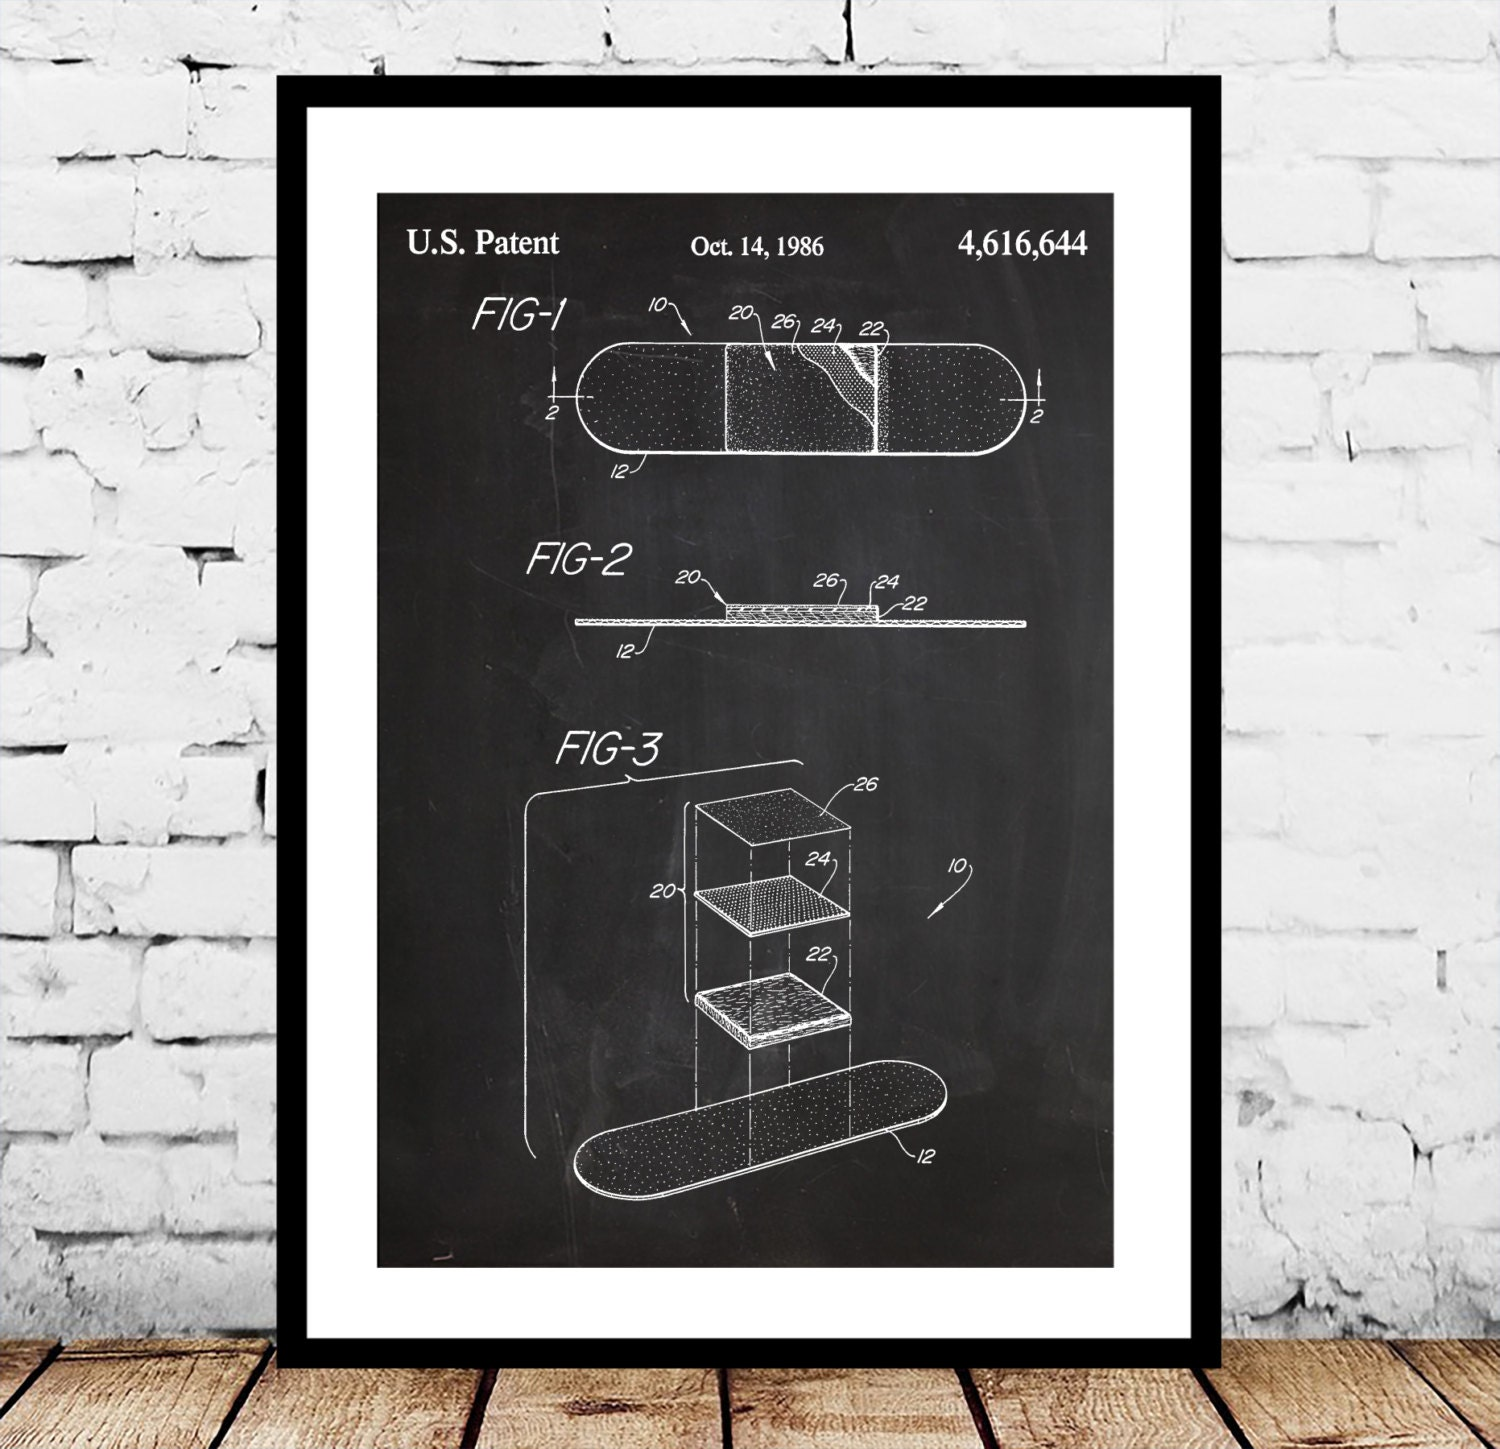 Band aid patent band aid poster band aid blueprint band aid print band aid patent band aid poster band aid blueprint band aid print band aid art band aid decor malvernweather Images